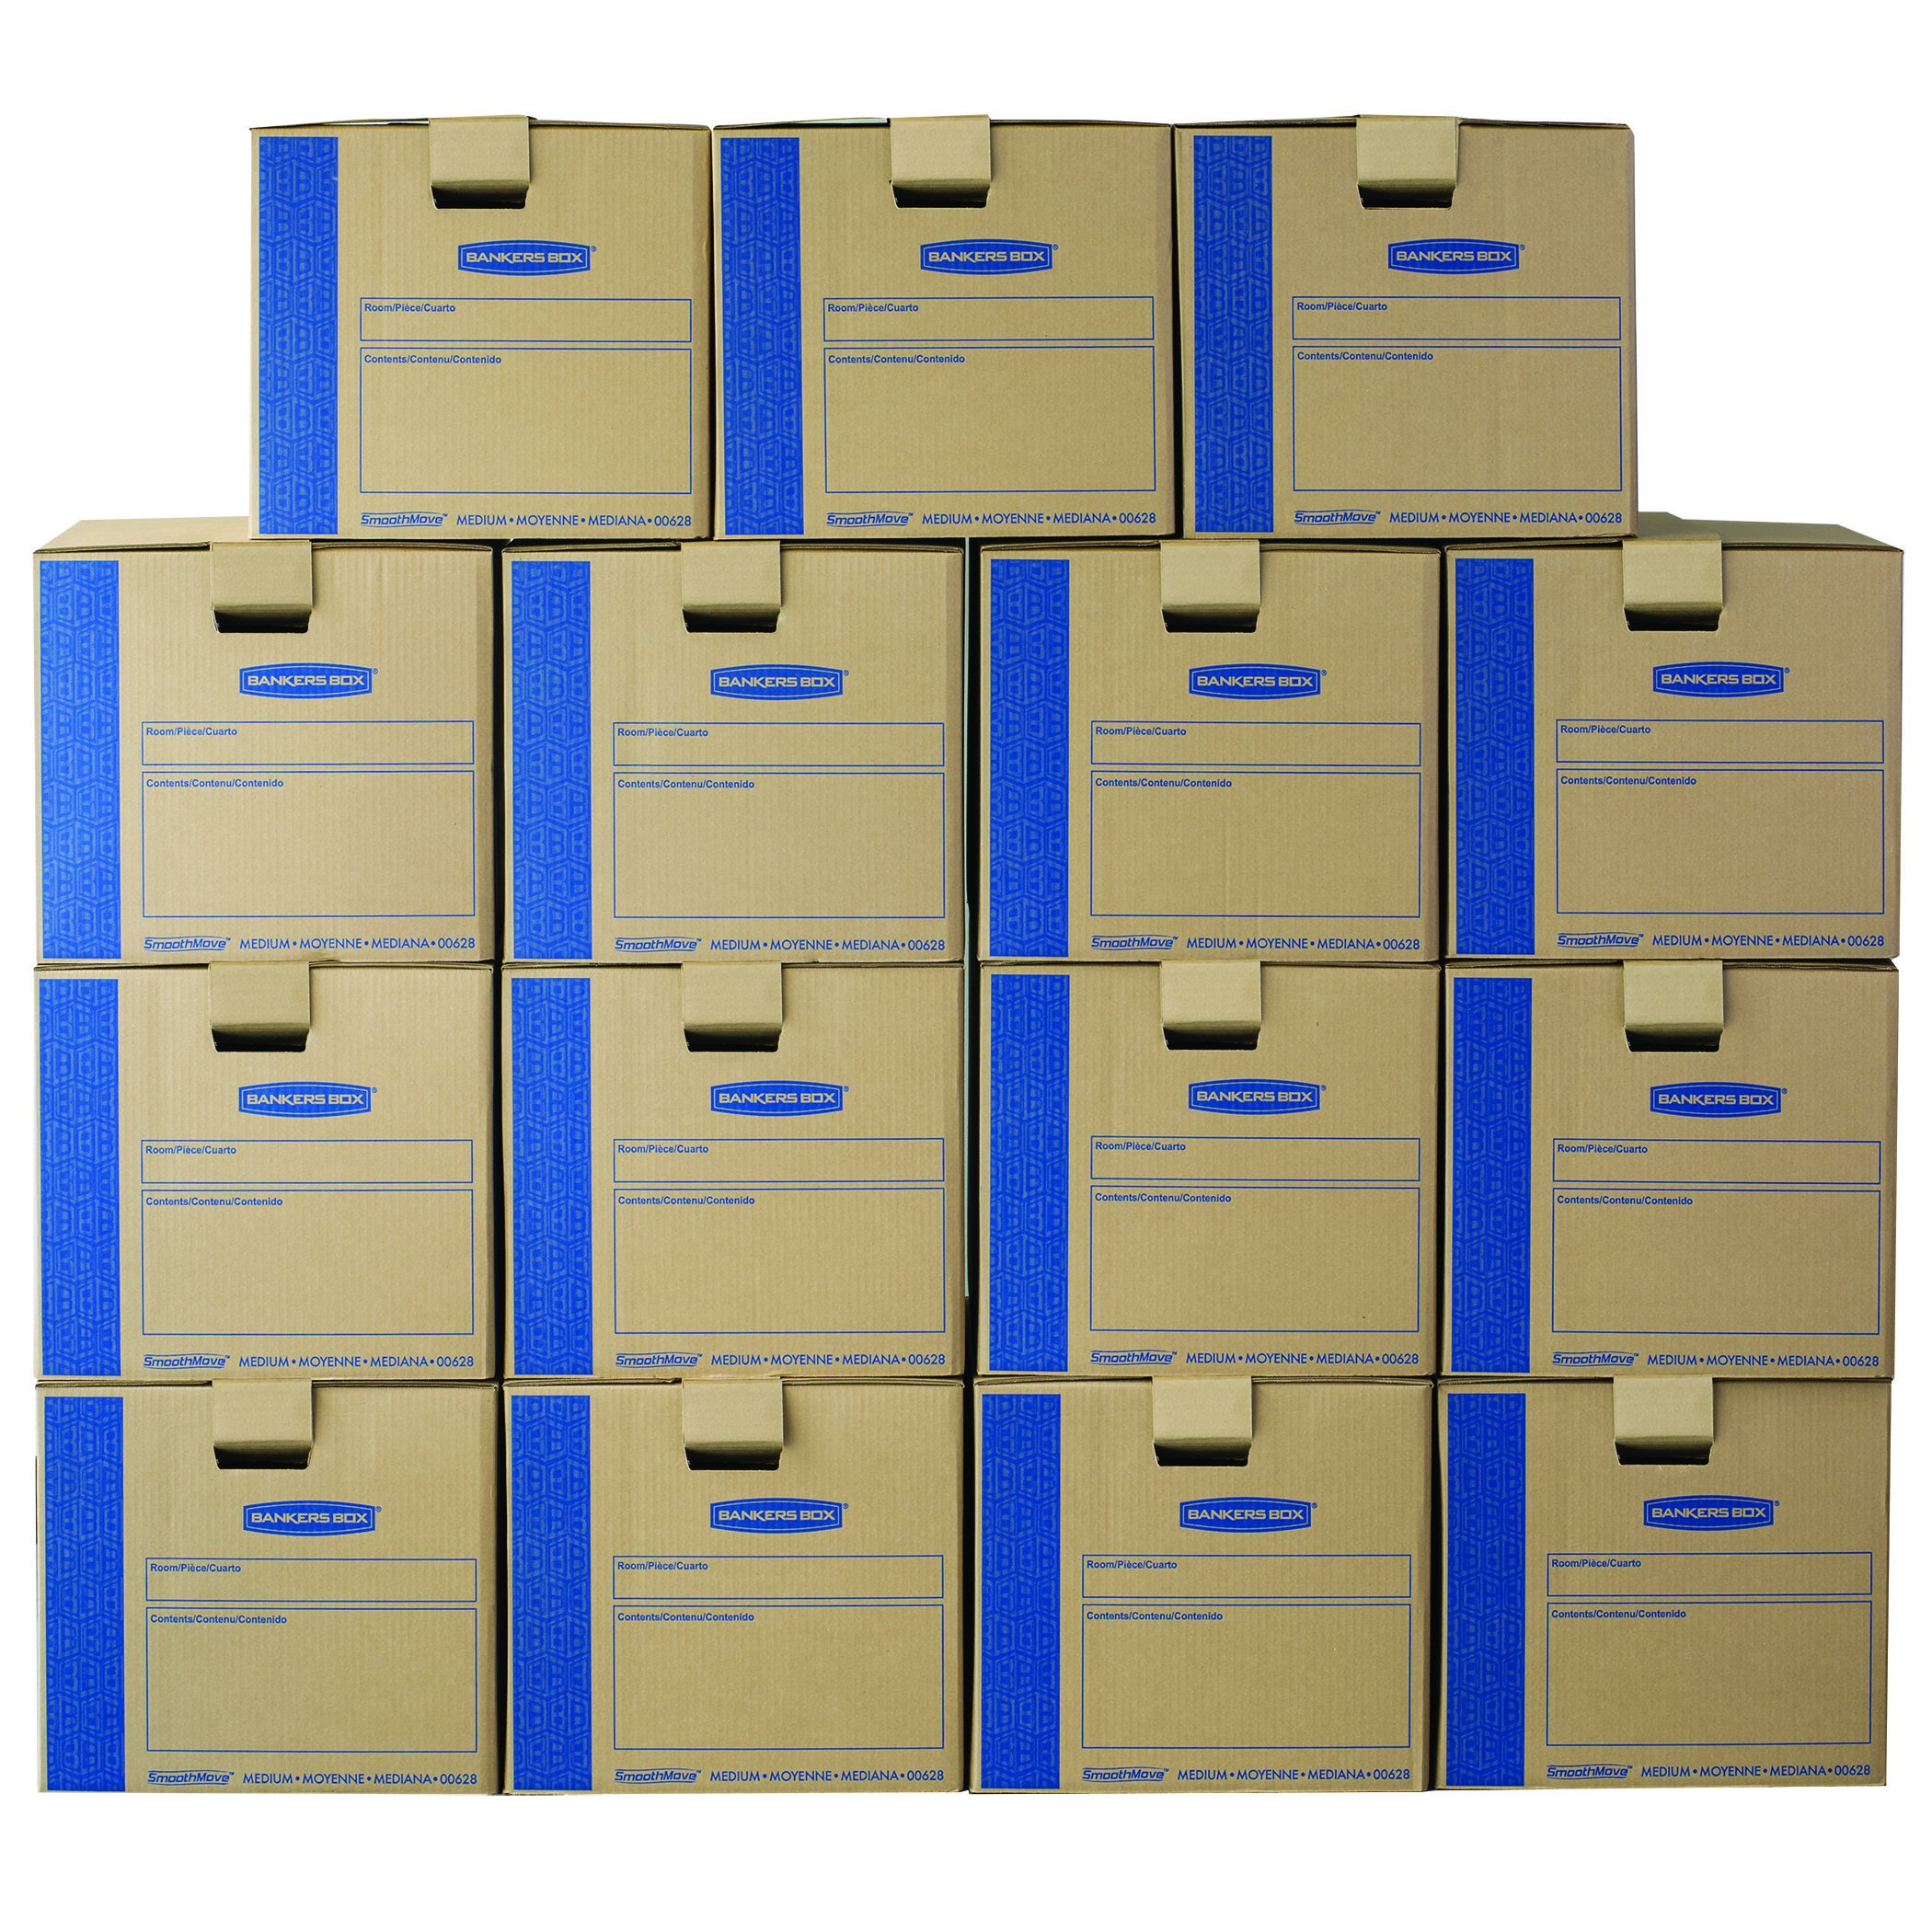 Bankers Box SmoothMove Prime Moving Boxes, Tape-Free, FastFold Easy Assembly, Handles, Reusable, Medium, 18 x 18 x 16 inches, 15 Pack (0062805)